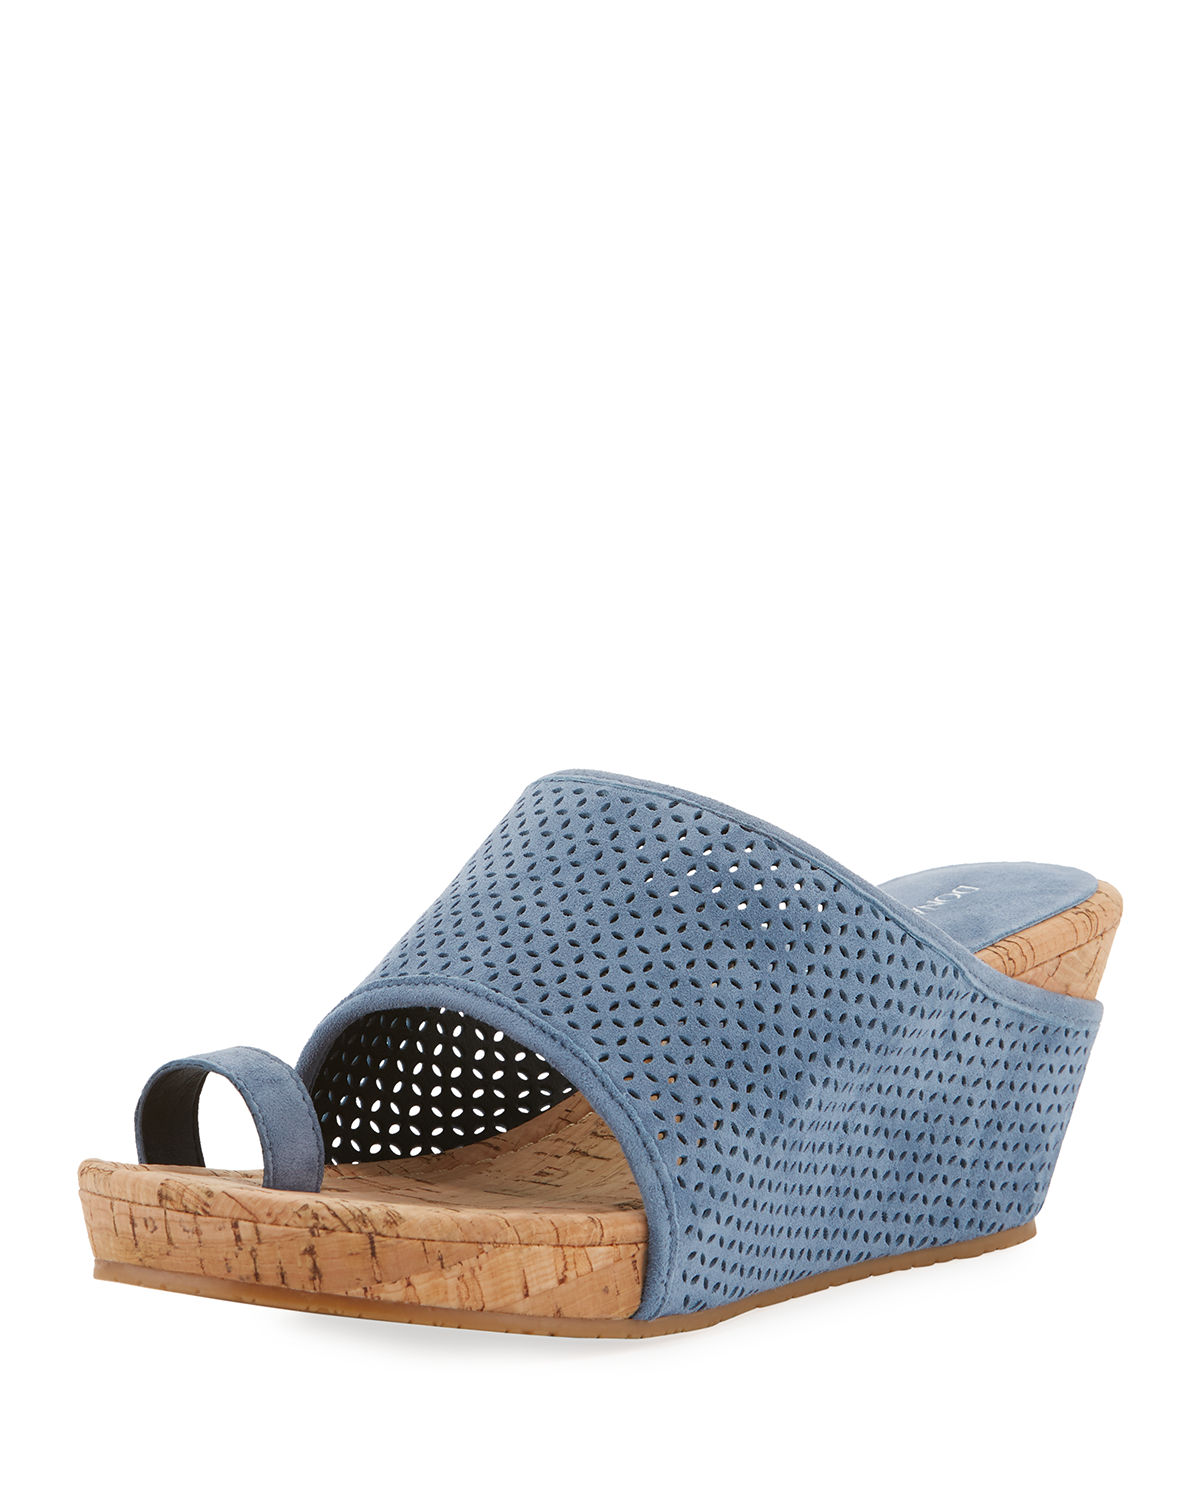 cb069444e8e Gent Perforated Suede Wedge Sandals in Dusk